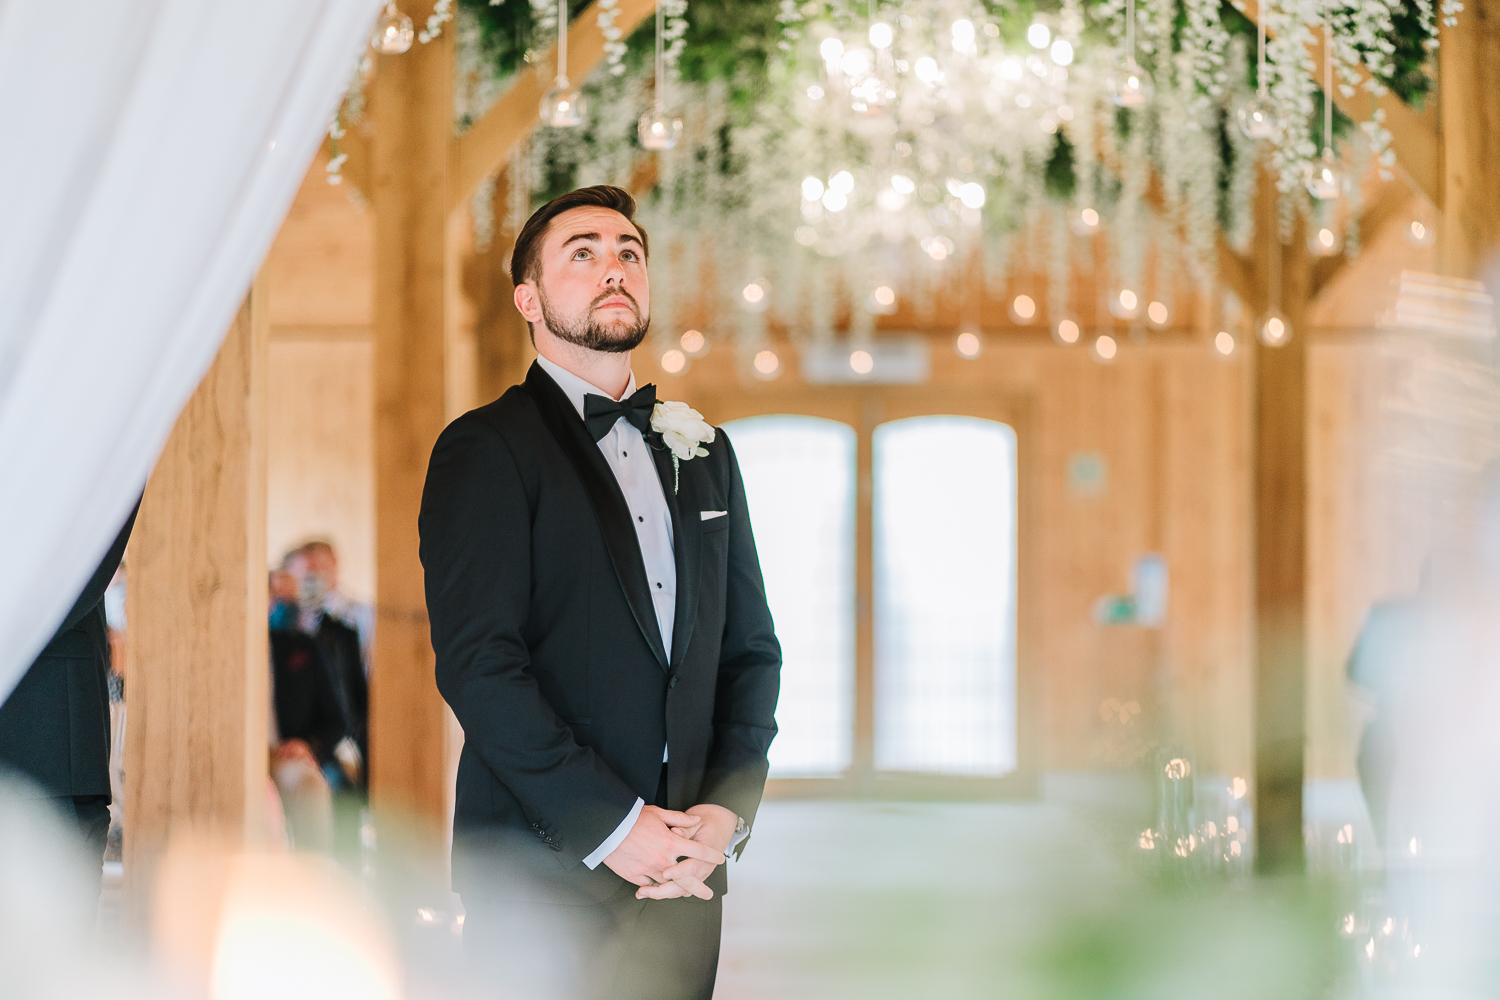 Groom waiting in the ceremony room